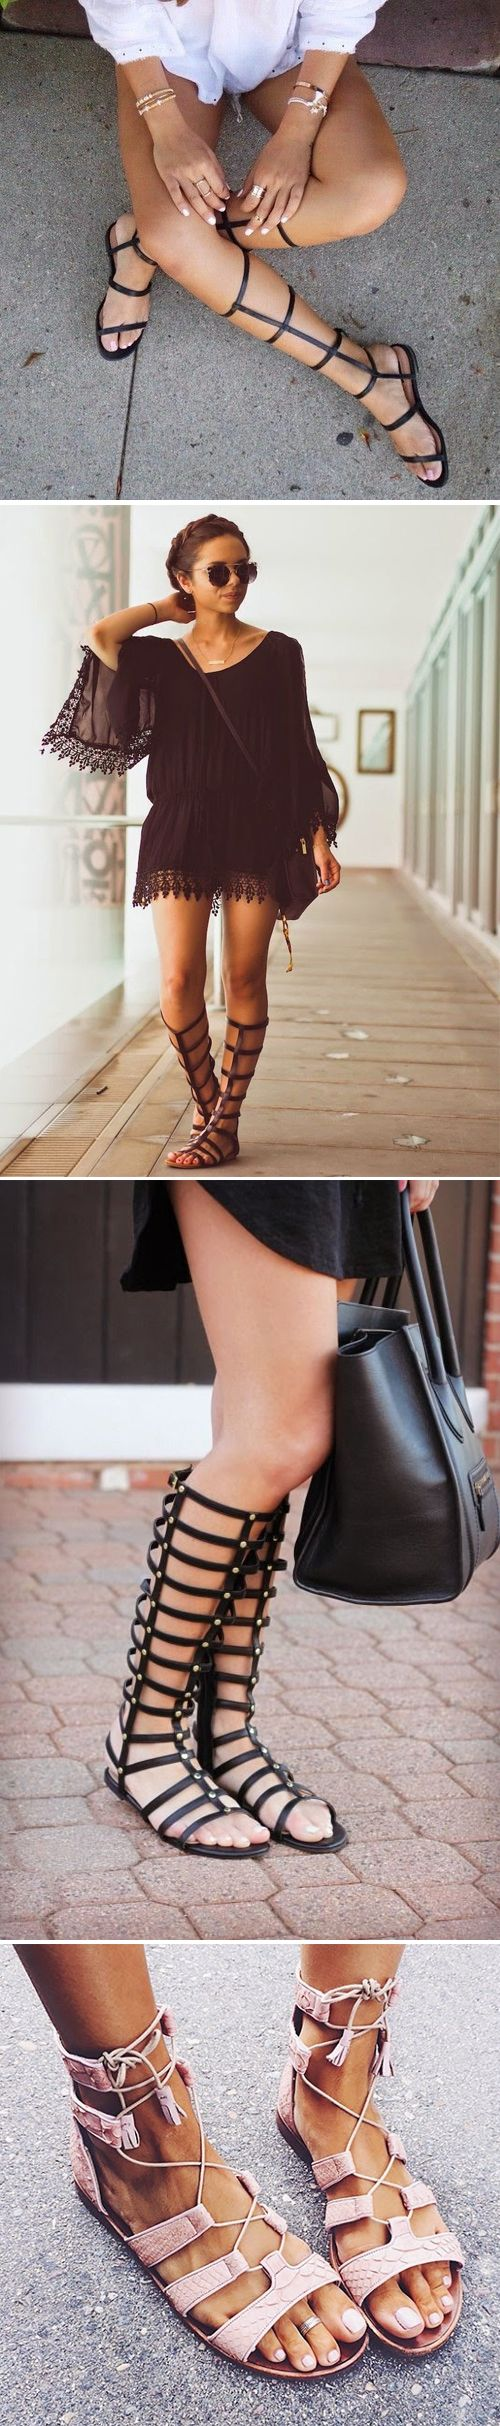 Cute Sandals! These gladiator sandals are adorable!!!